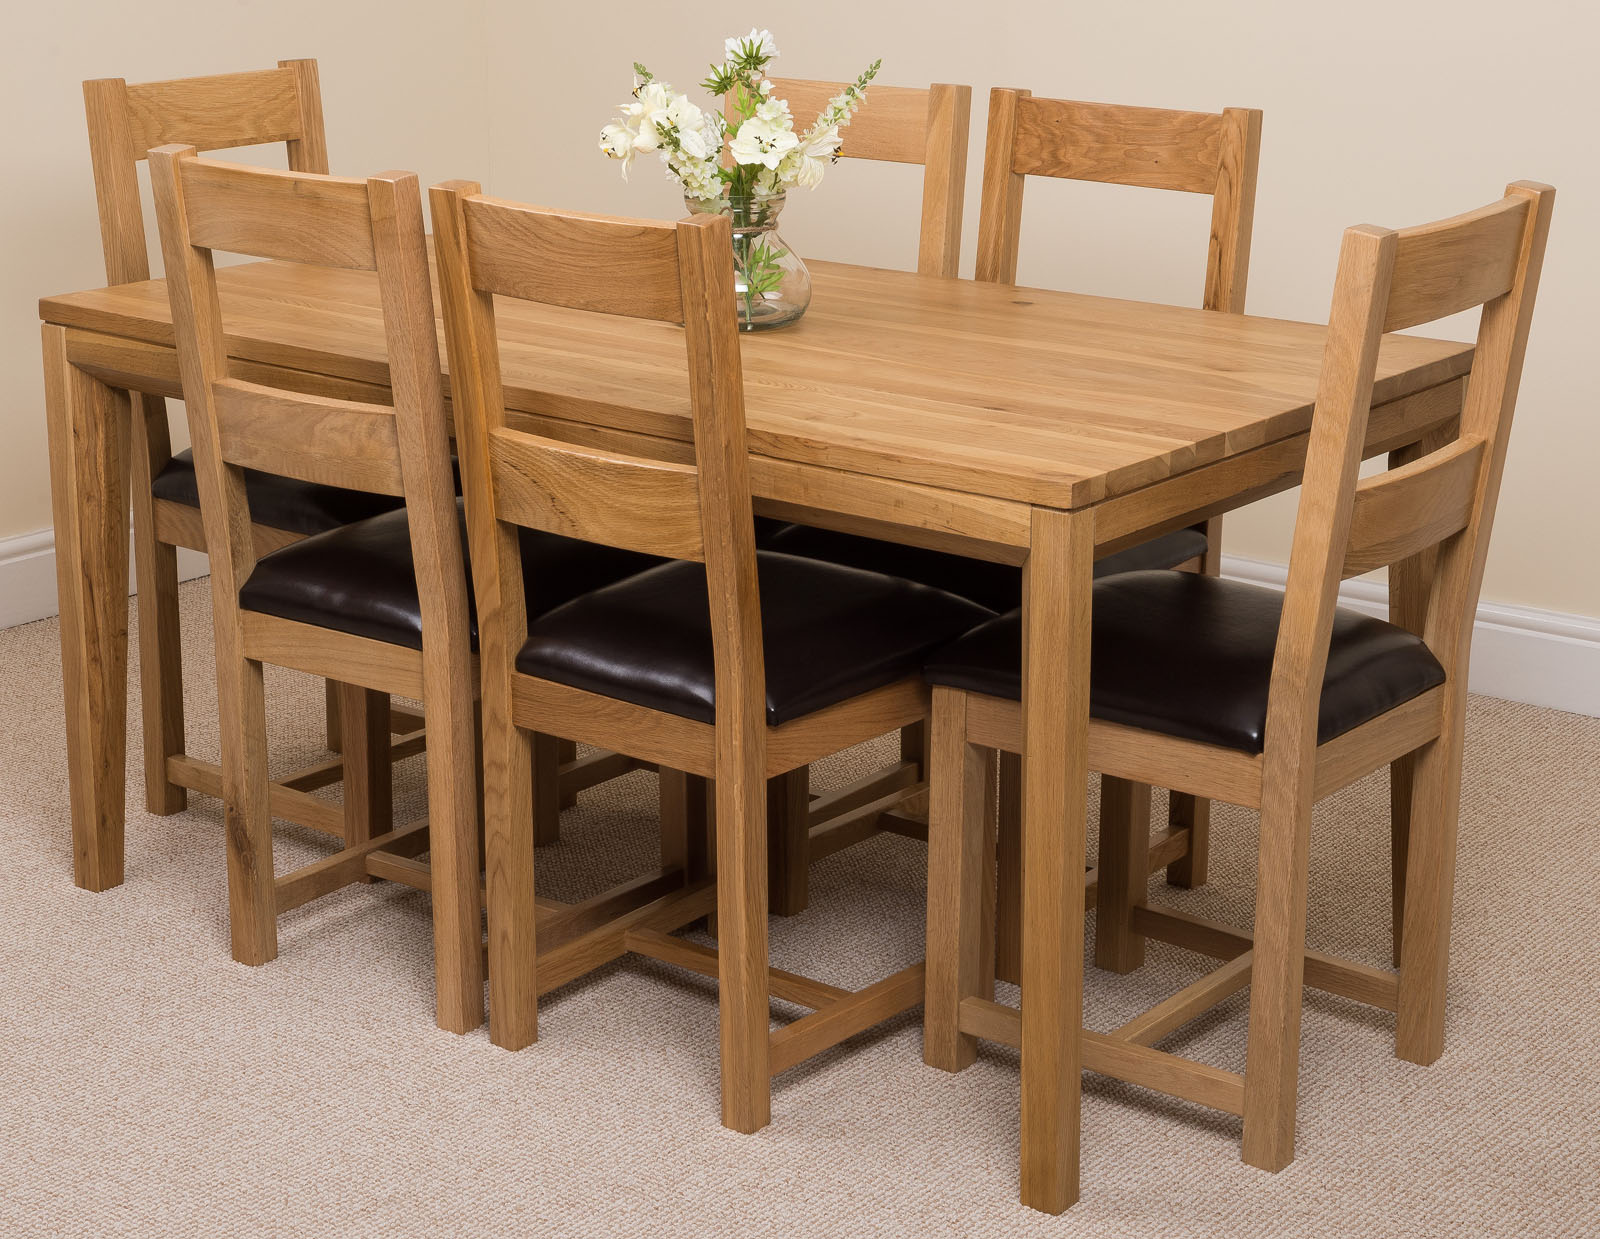 150 solid oak dining table with 4 or 6 lincoln chairs dining furniture